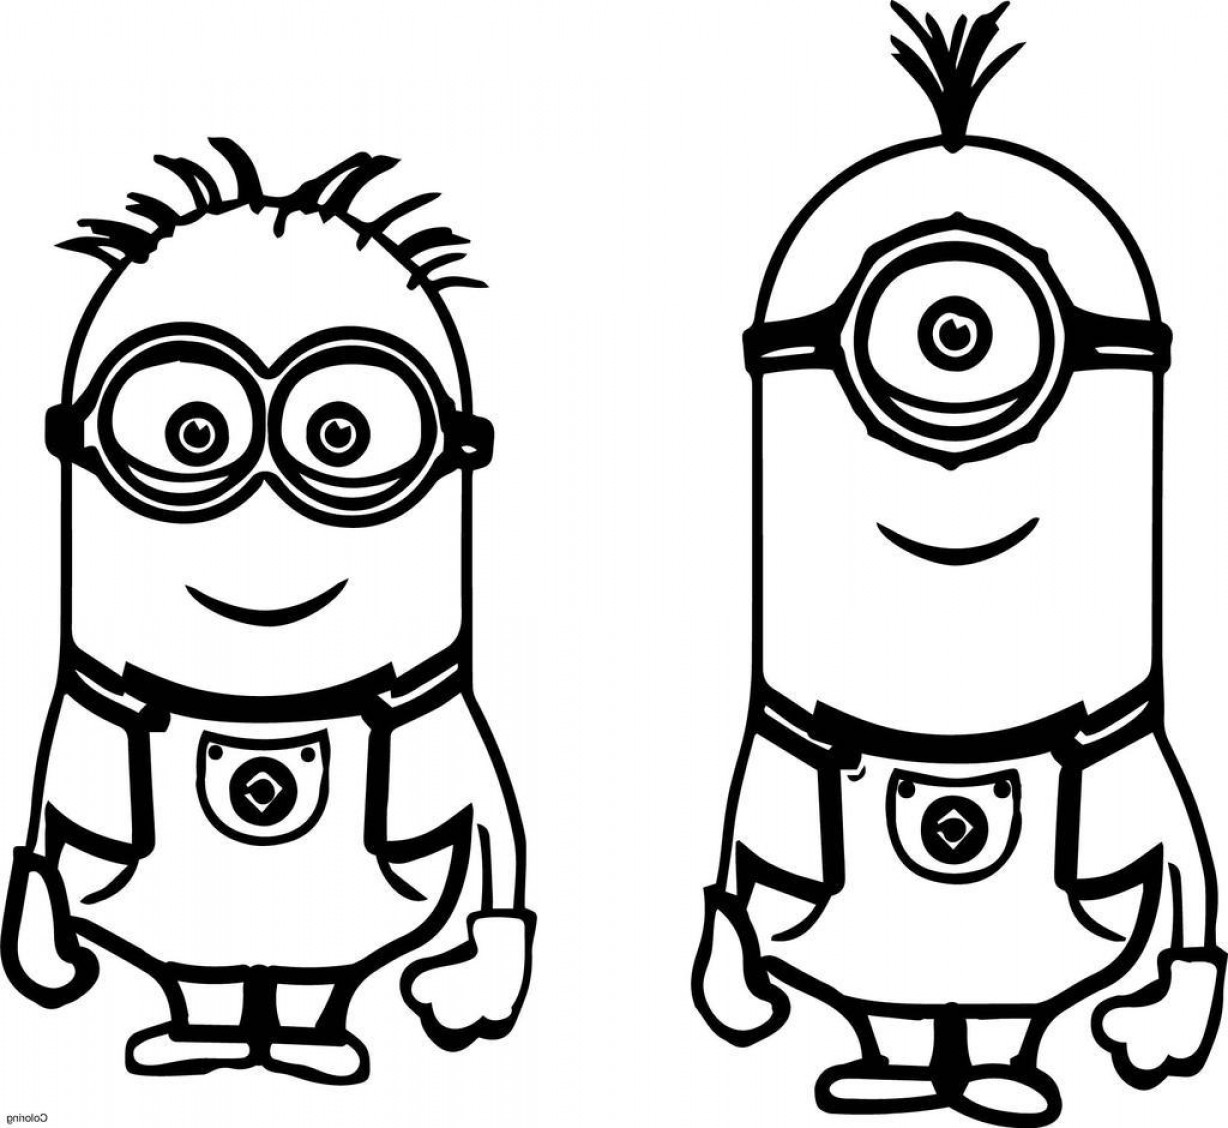 Minion From Despicable Me 2 Vector Image: Minions Despicable Me Coloring Pages Refrence Minion